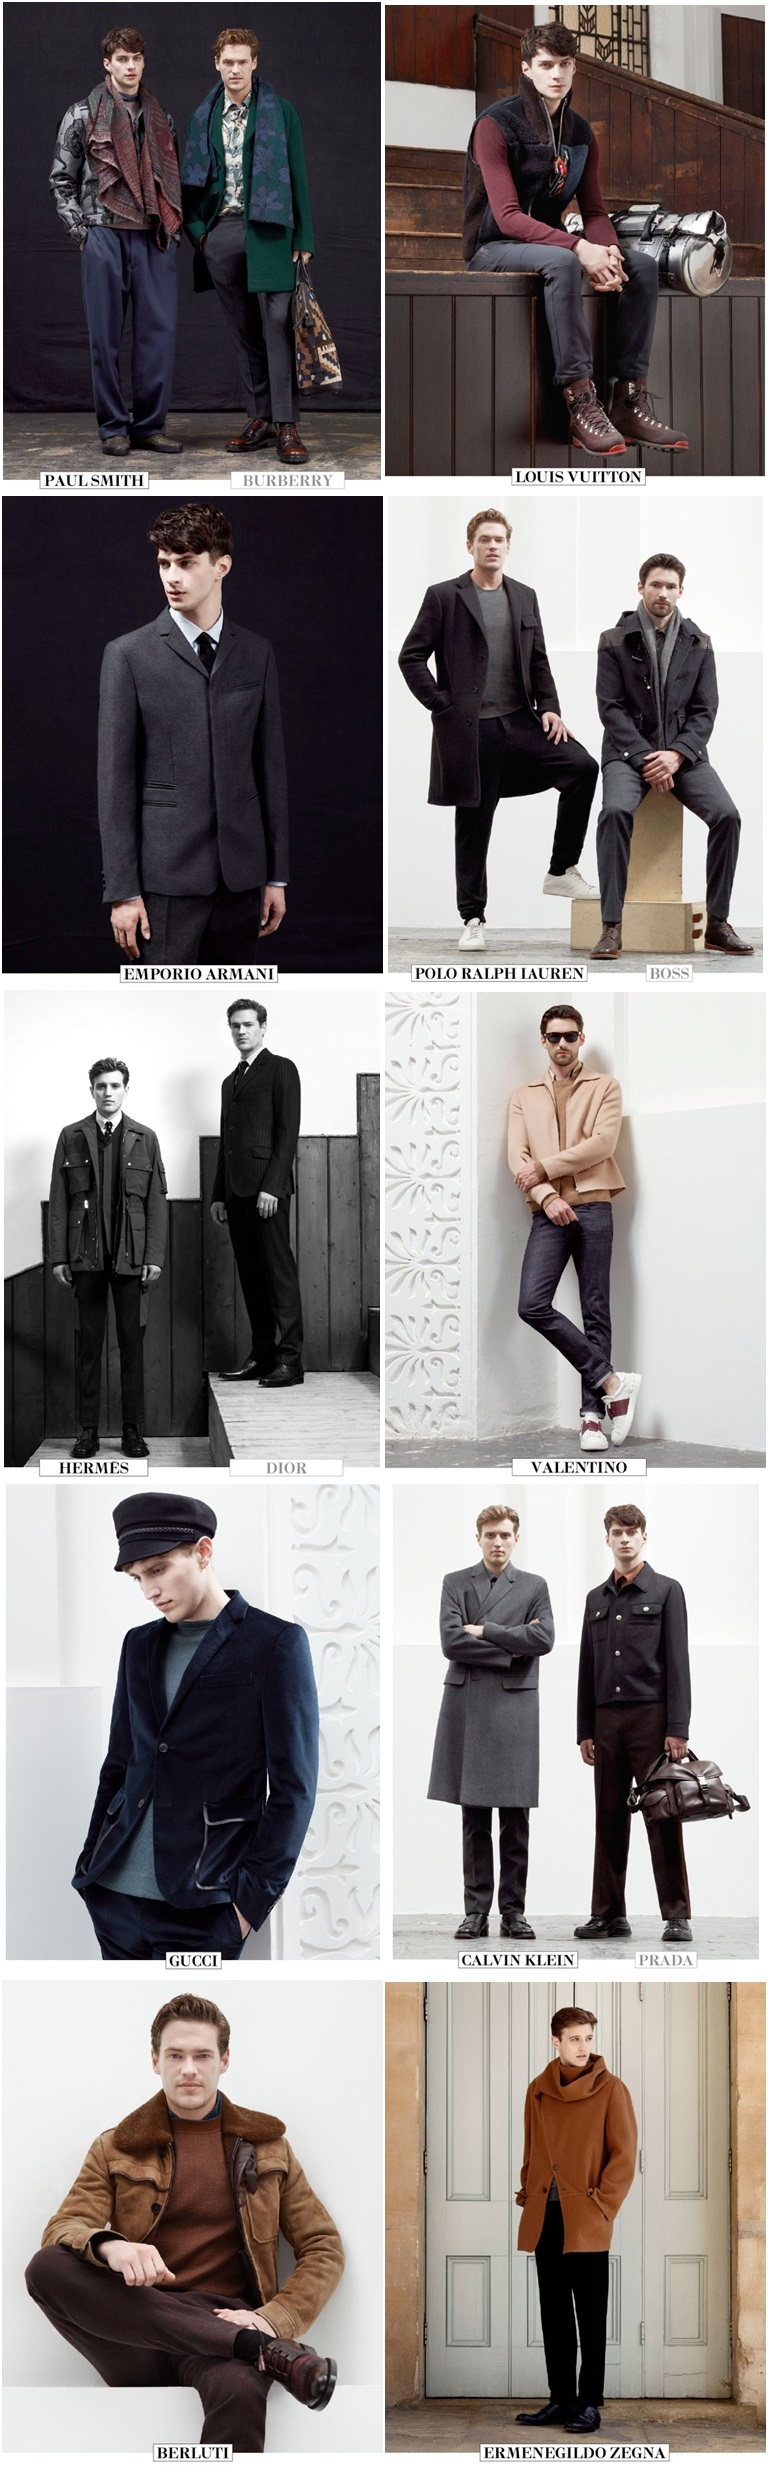 GQ-France-Fall-2014-Collections-Fashion4addicts